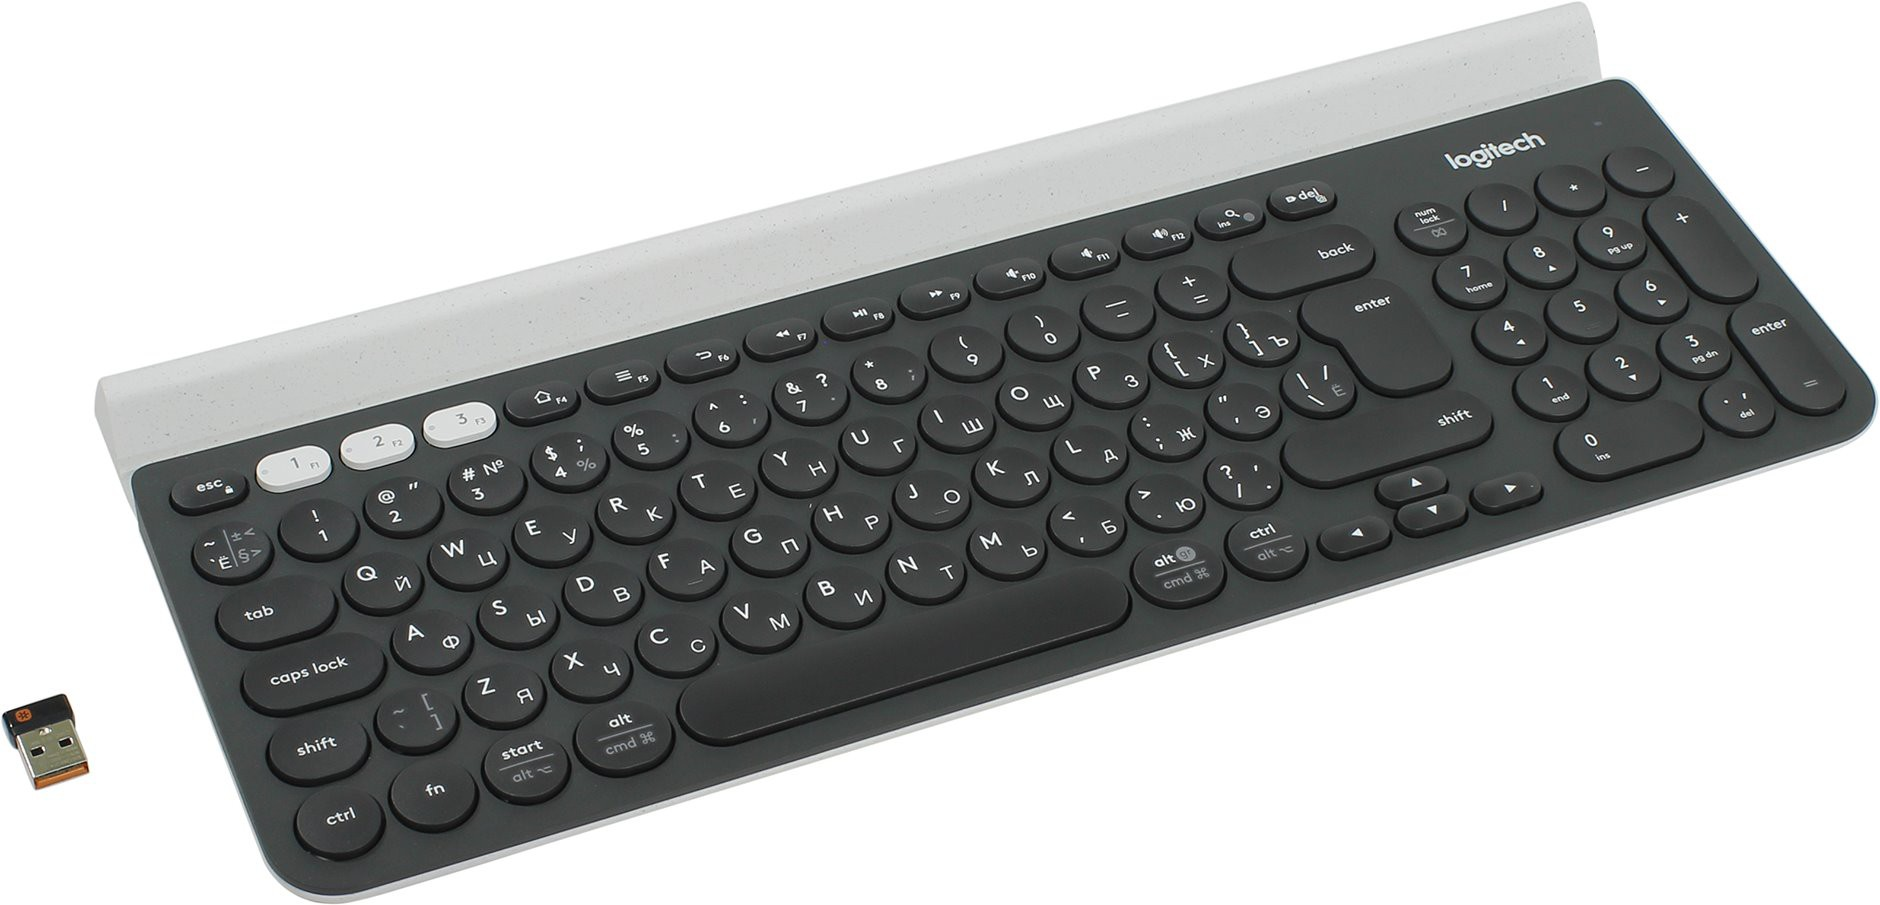 Клавиатура Logitech Multi-Device K780 Wireless 920-008043 (Bluetooth + радио, до 3х устройств)